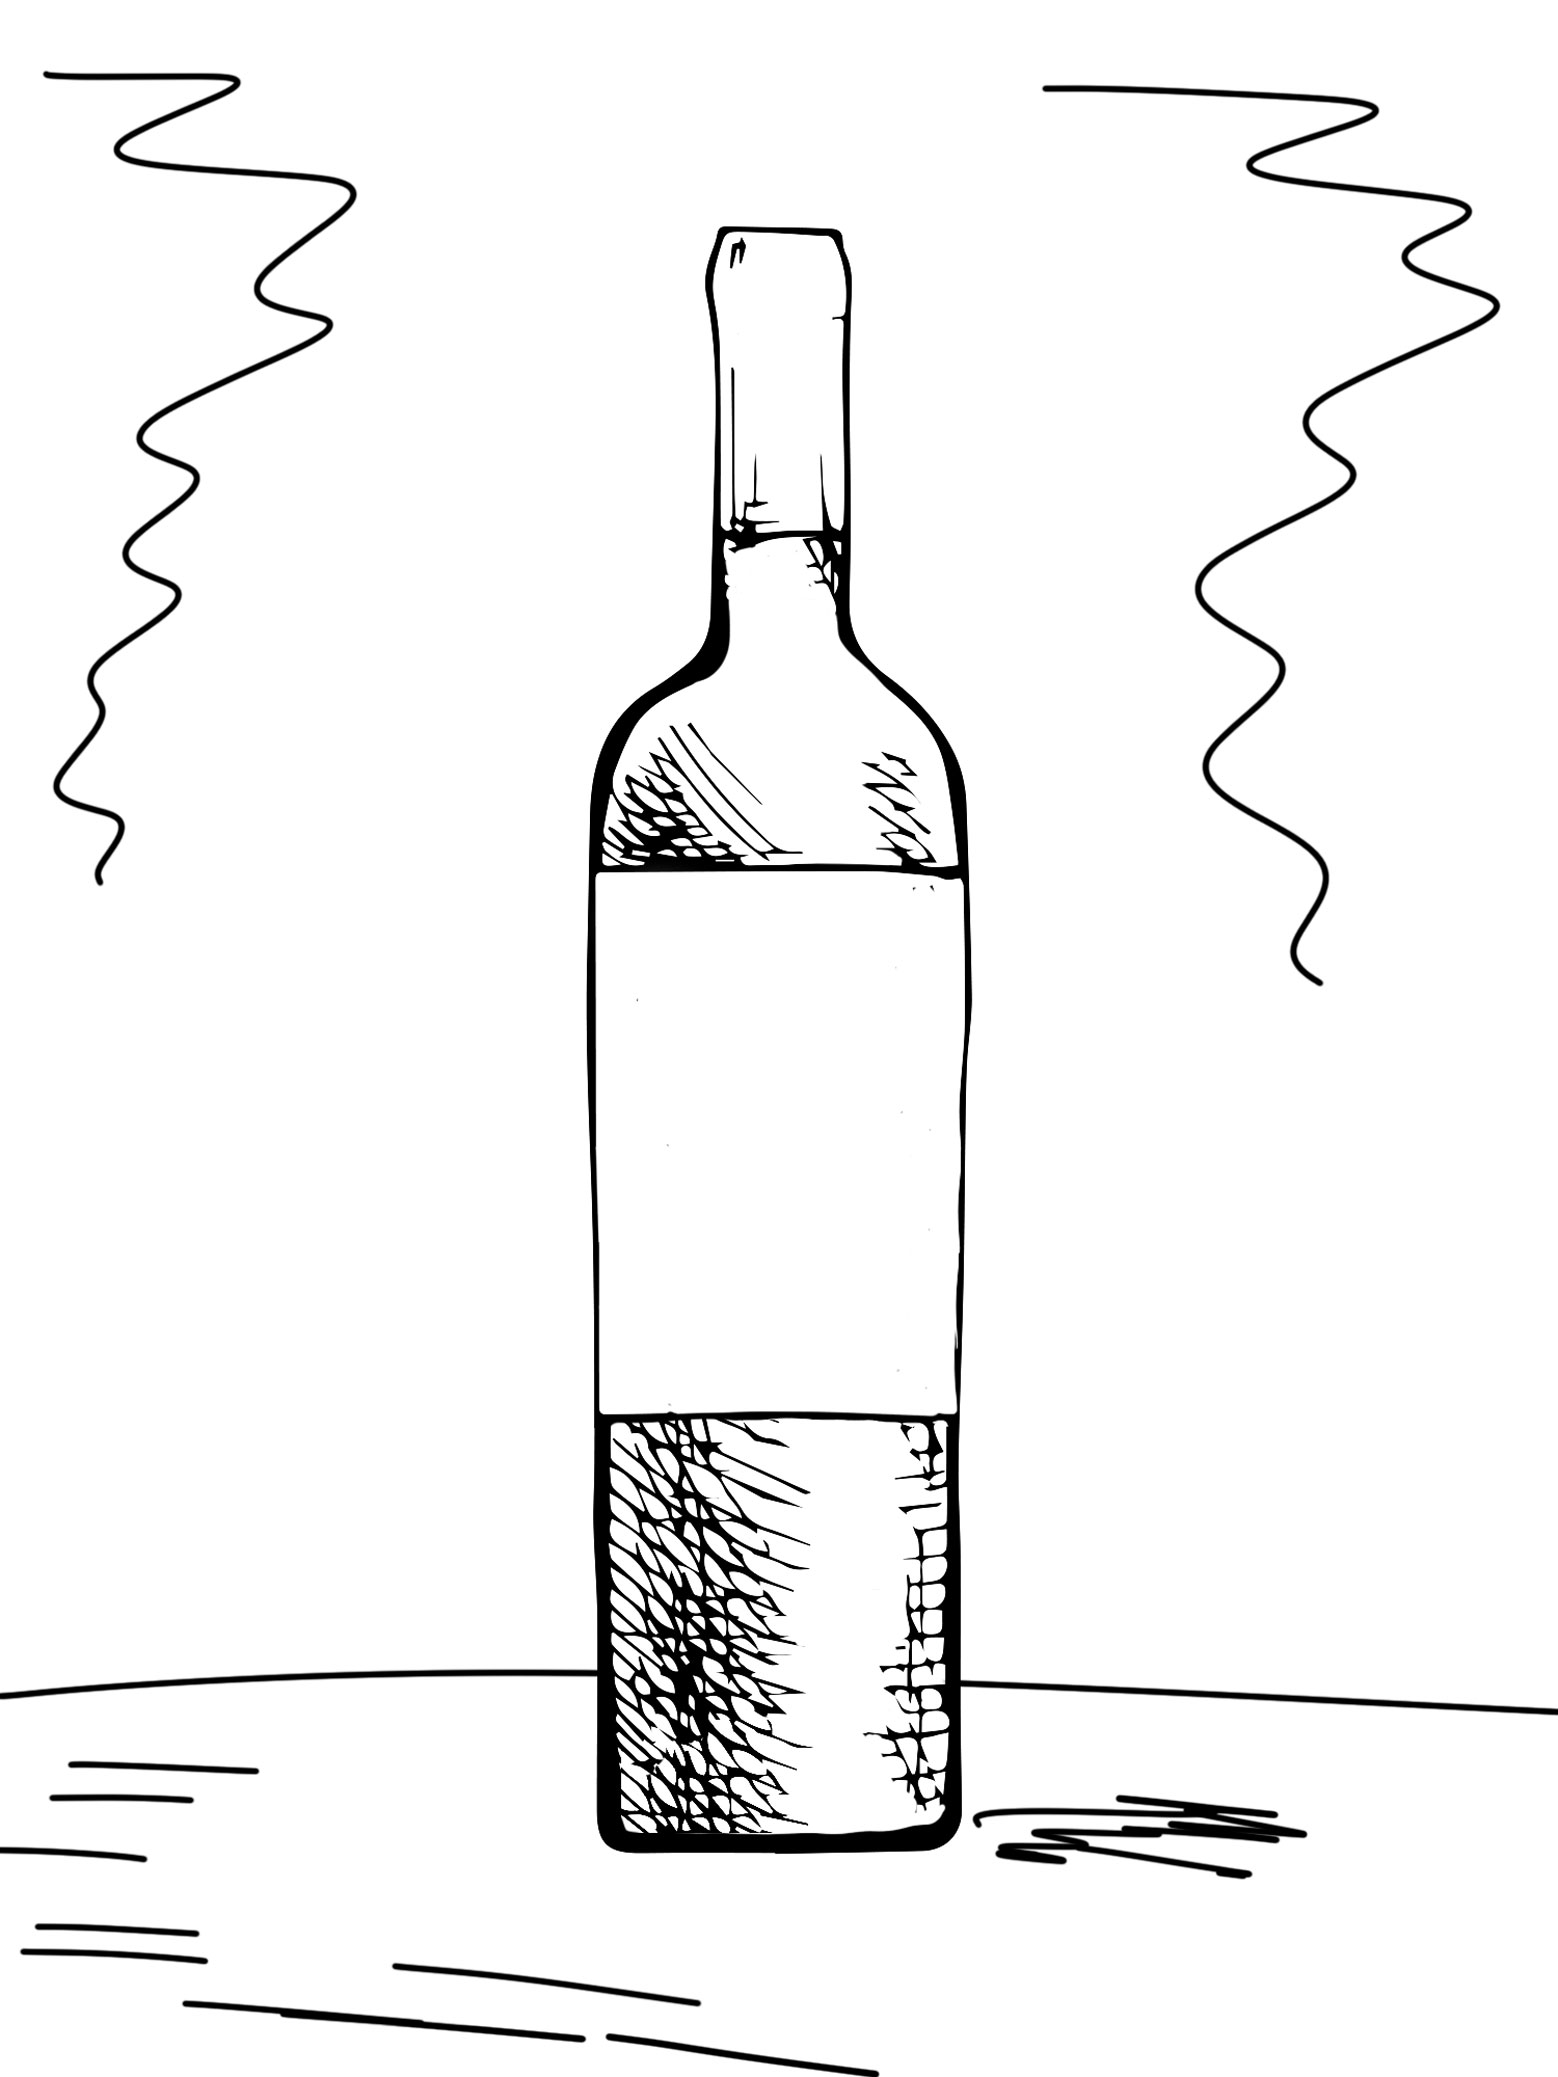 Wine bottle sketch for photography brief